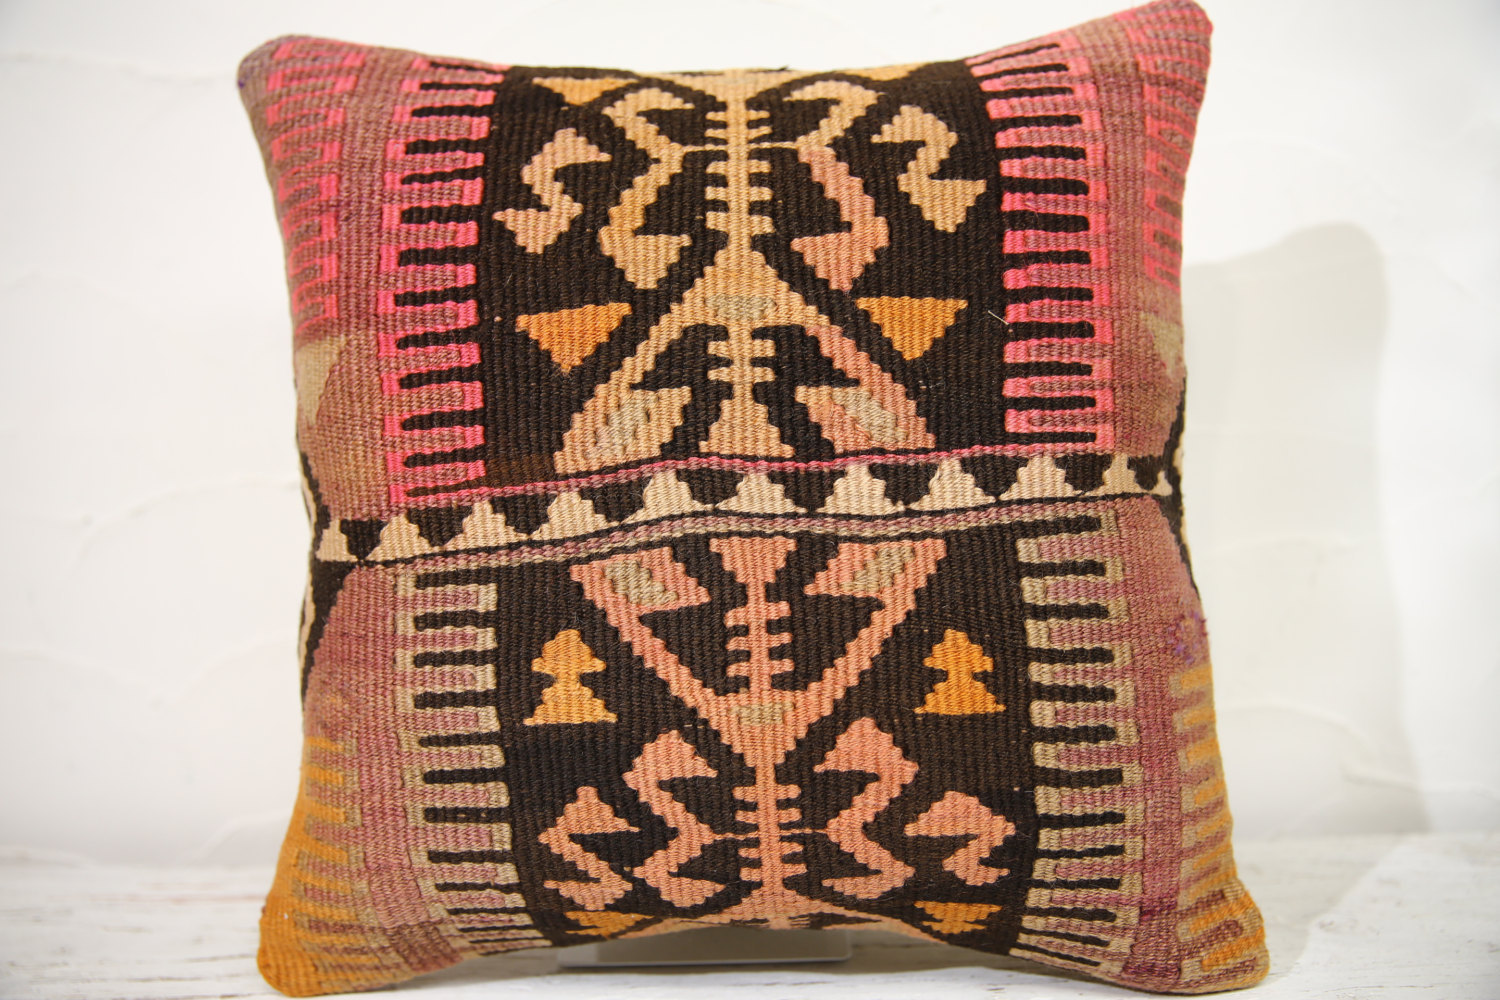 Kilim Pillows | 16x16 | Decorative Pillows | 770 | Accent Pillows , turkish pill